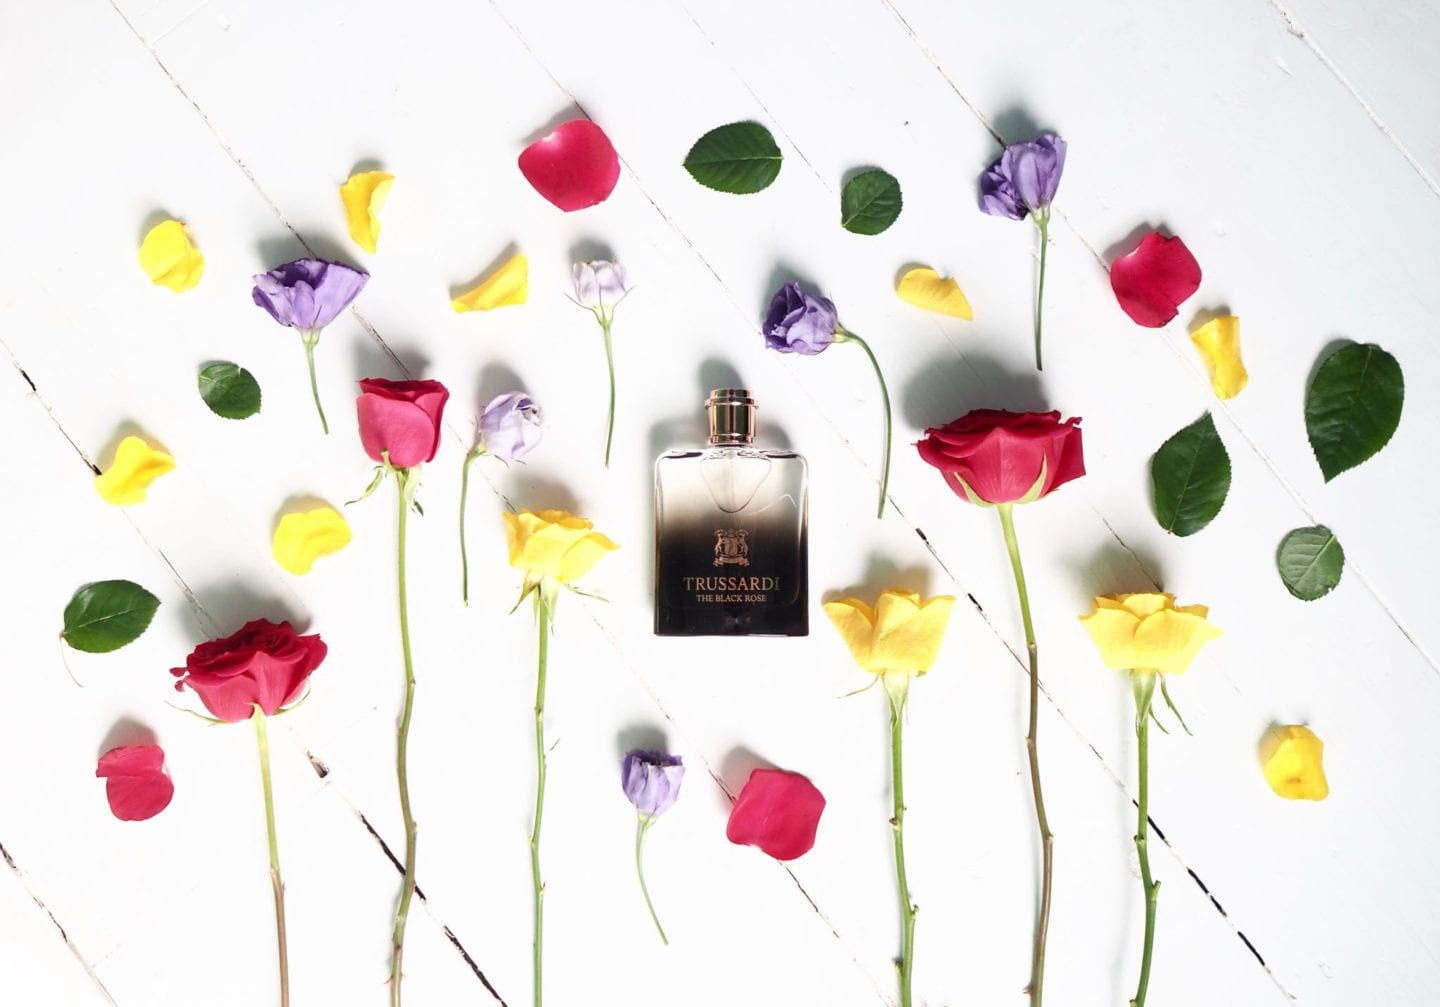 trusardi black rose perfume